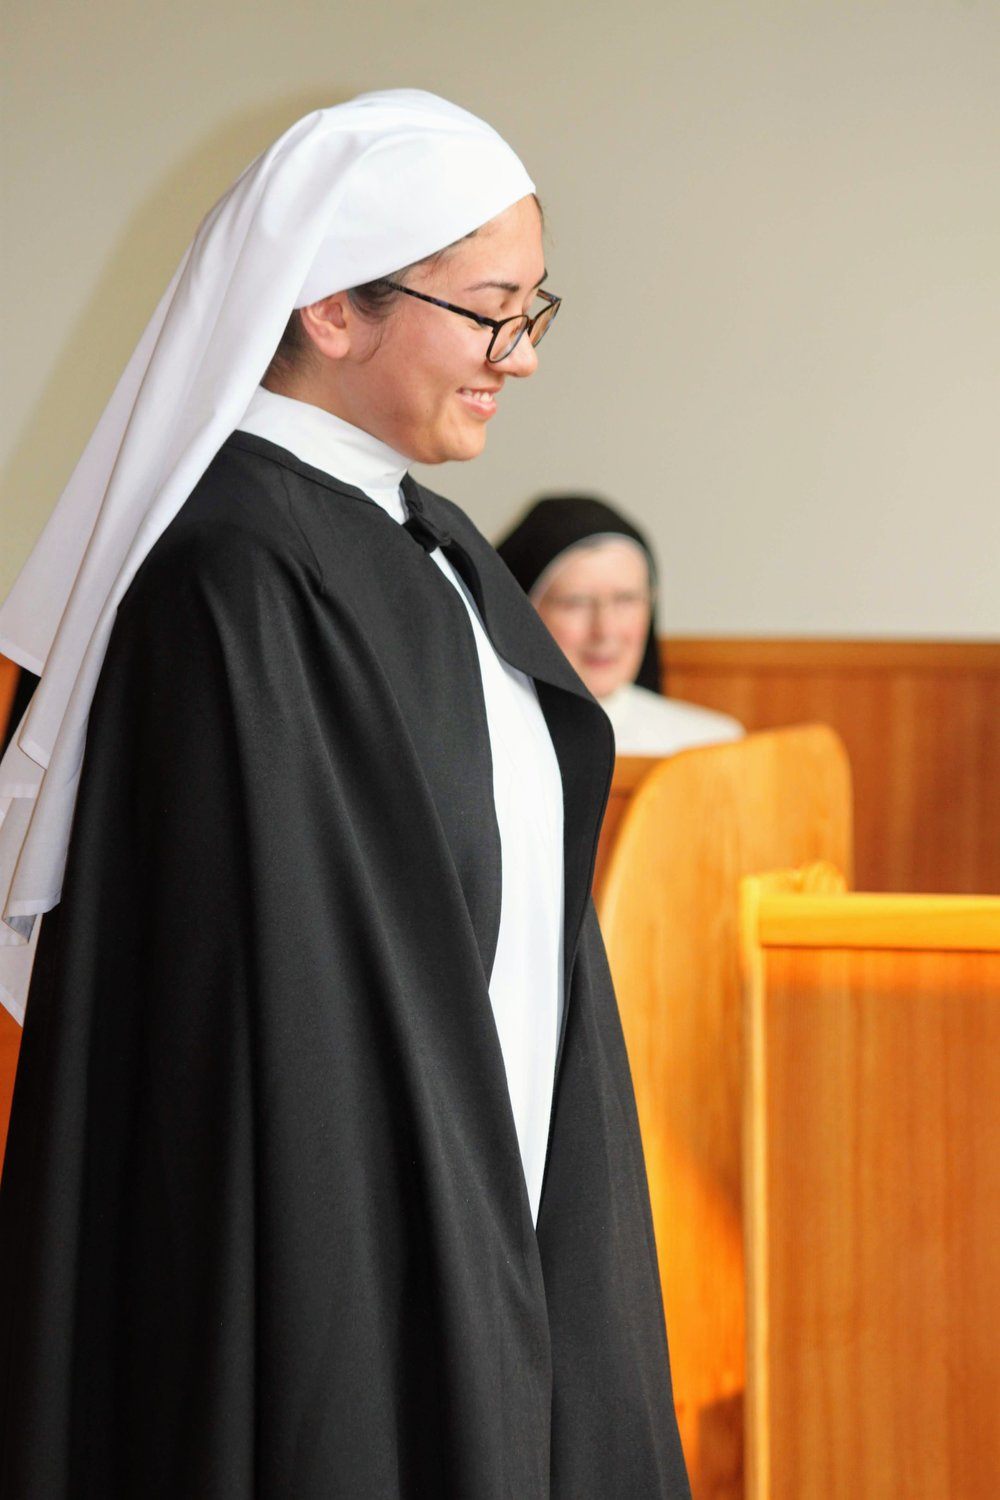 In religious life you will be called Sr. Diana Marie of the Divine Mercy!